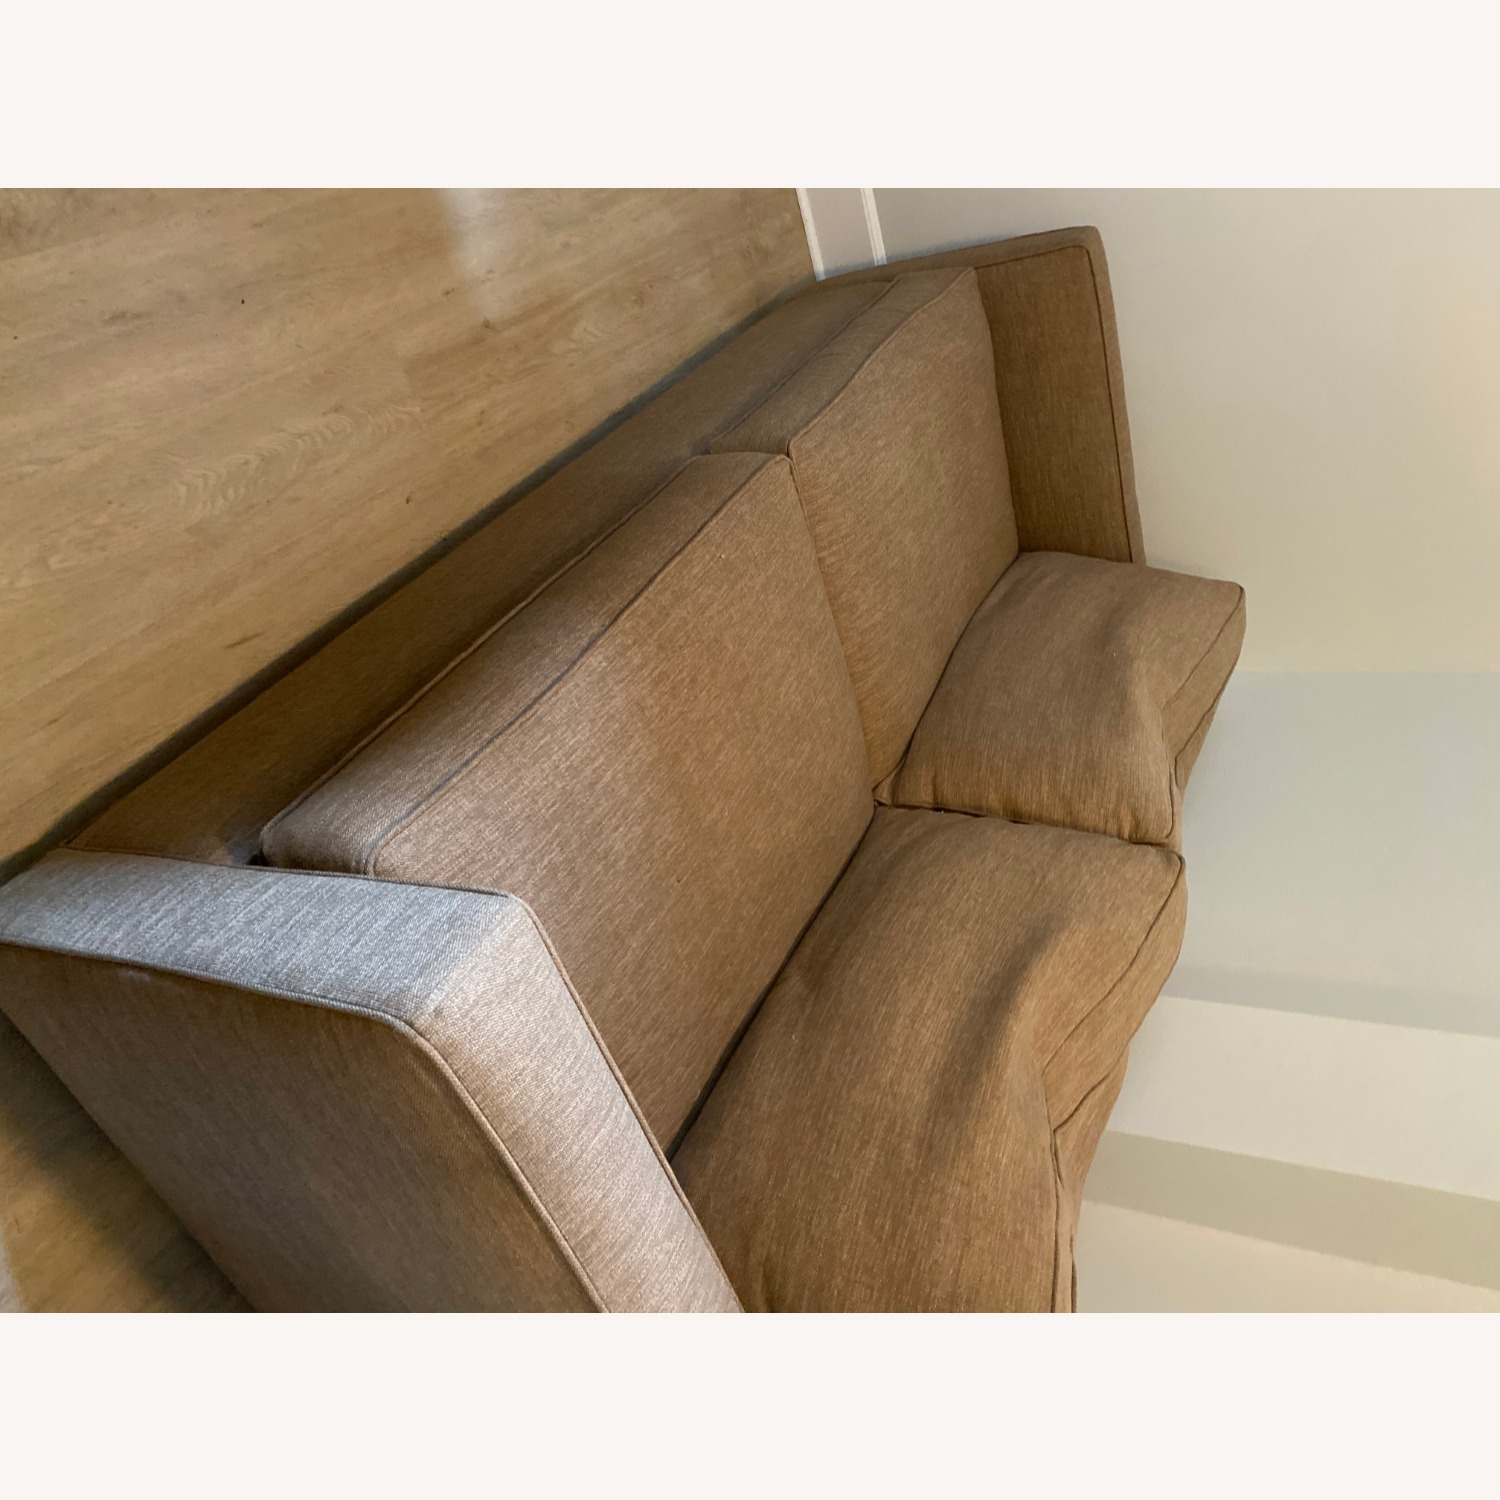 Crate & Barrel Davis Sofa - image-4